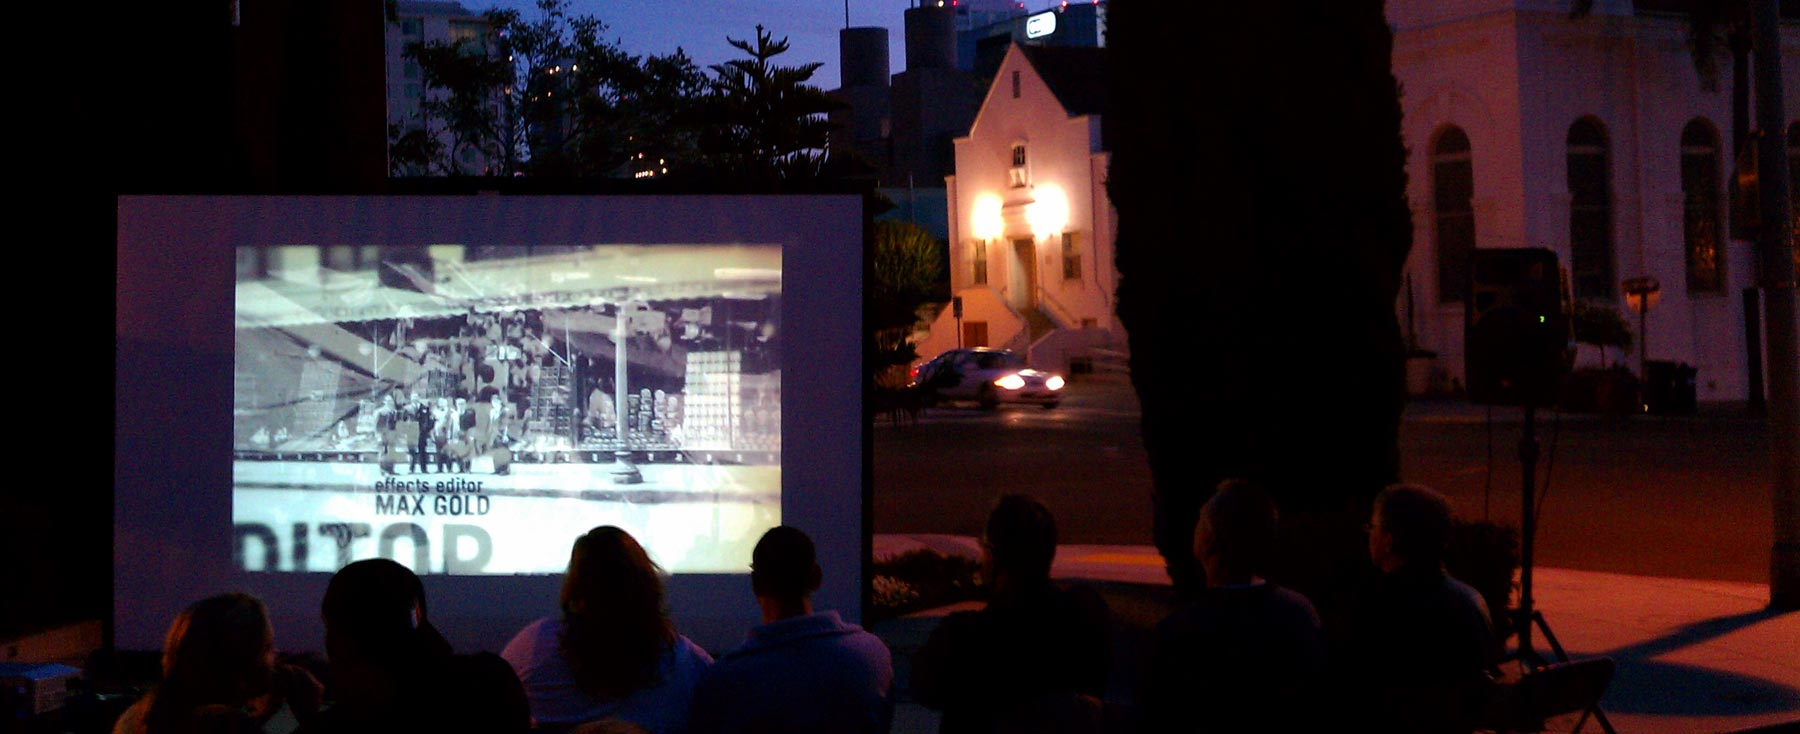 Little Italy Summer Film Festival - Top Things to Do